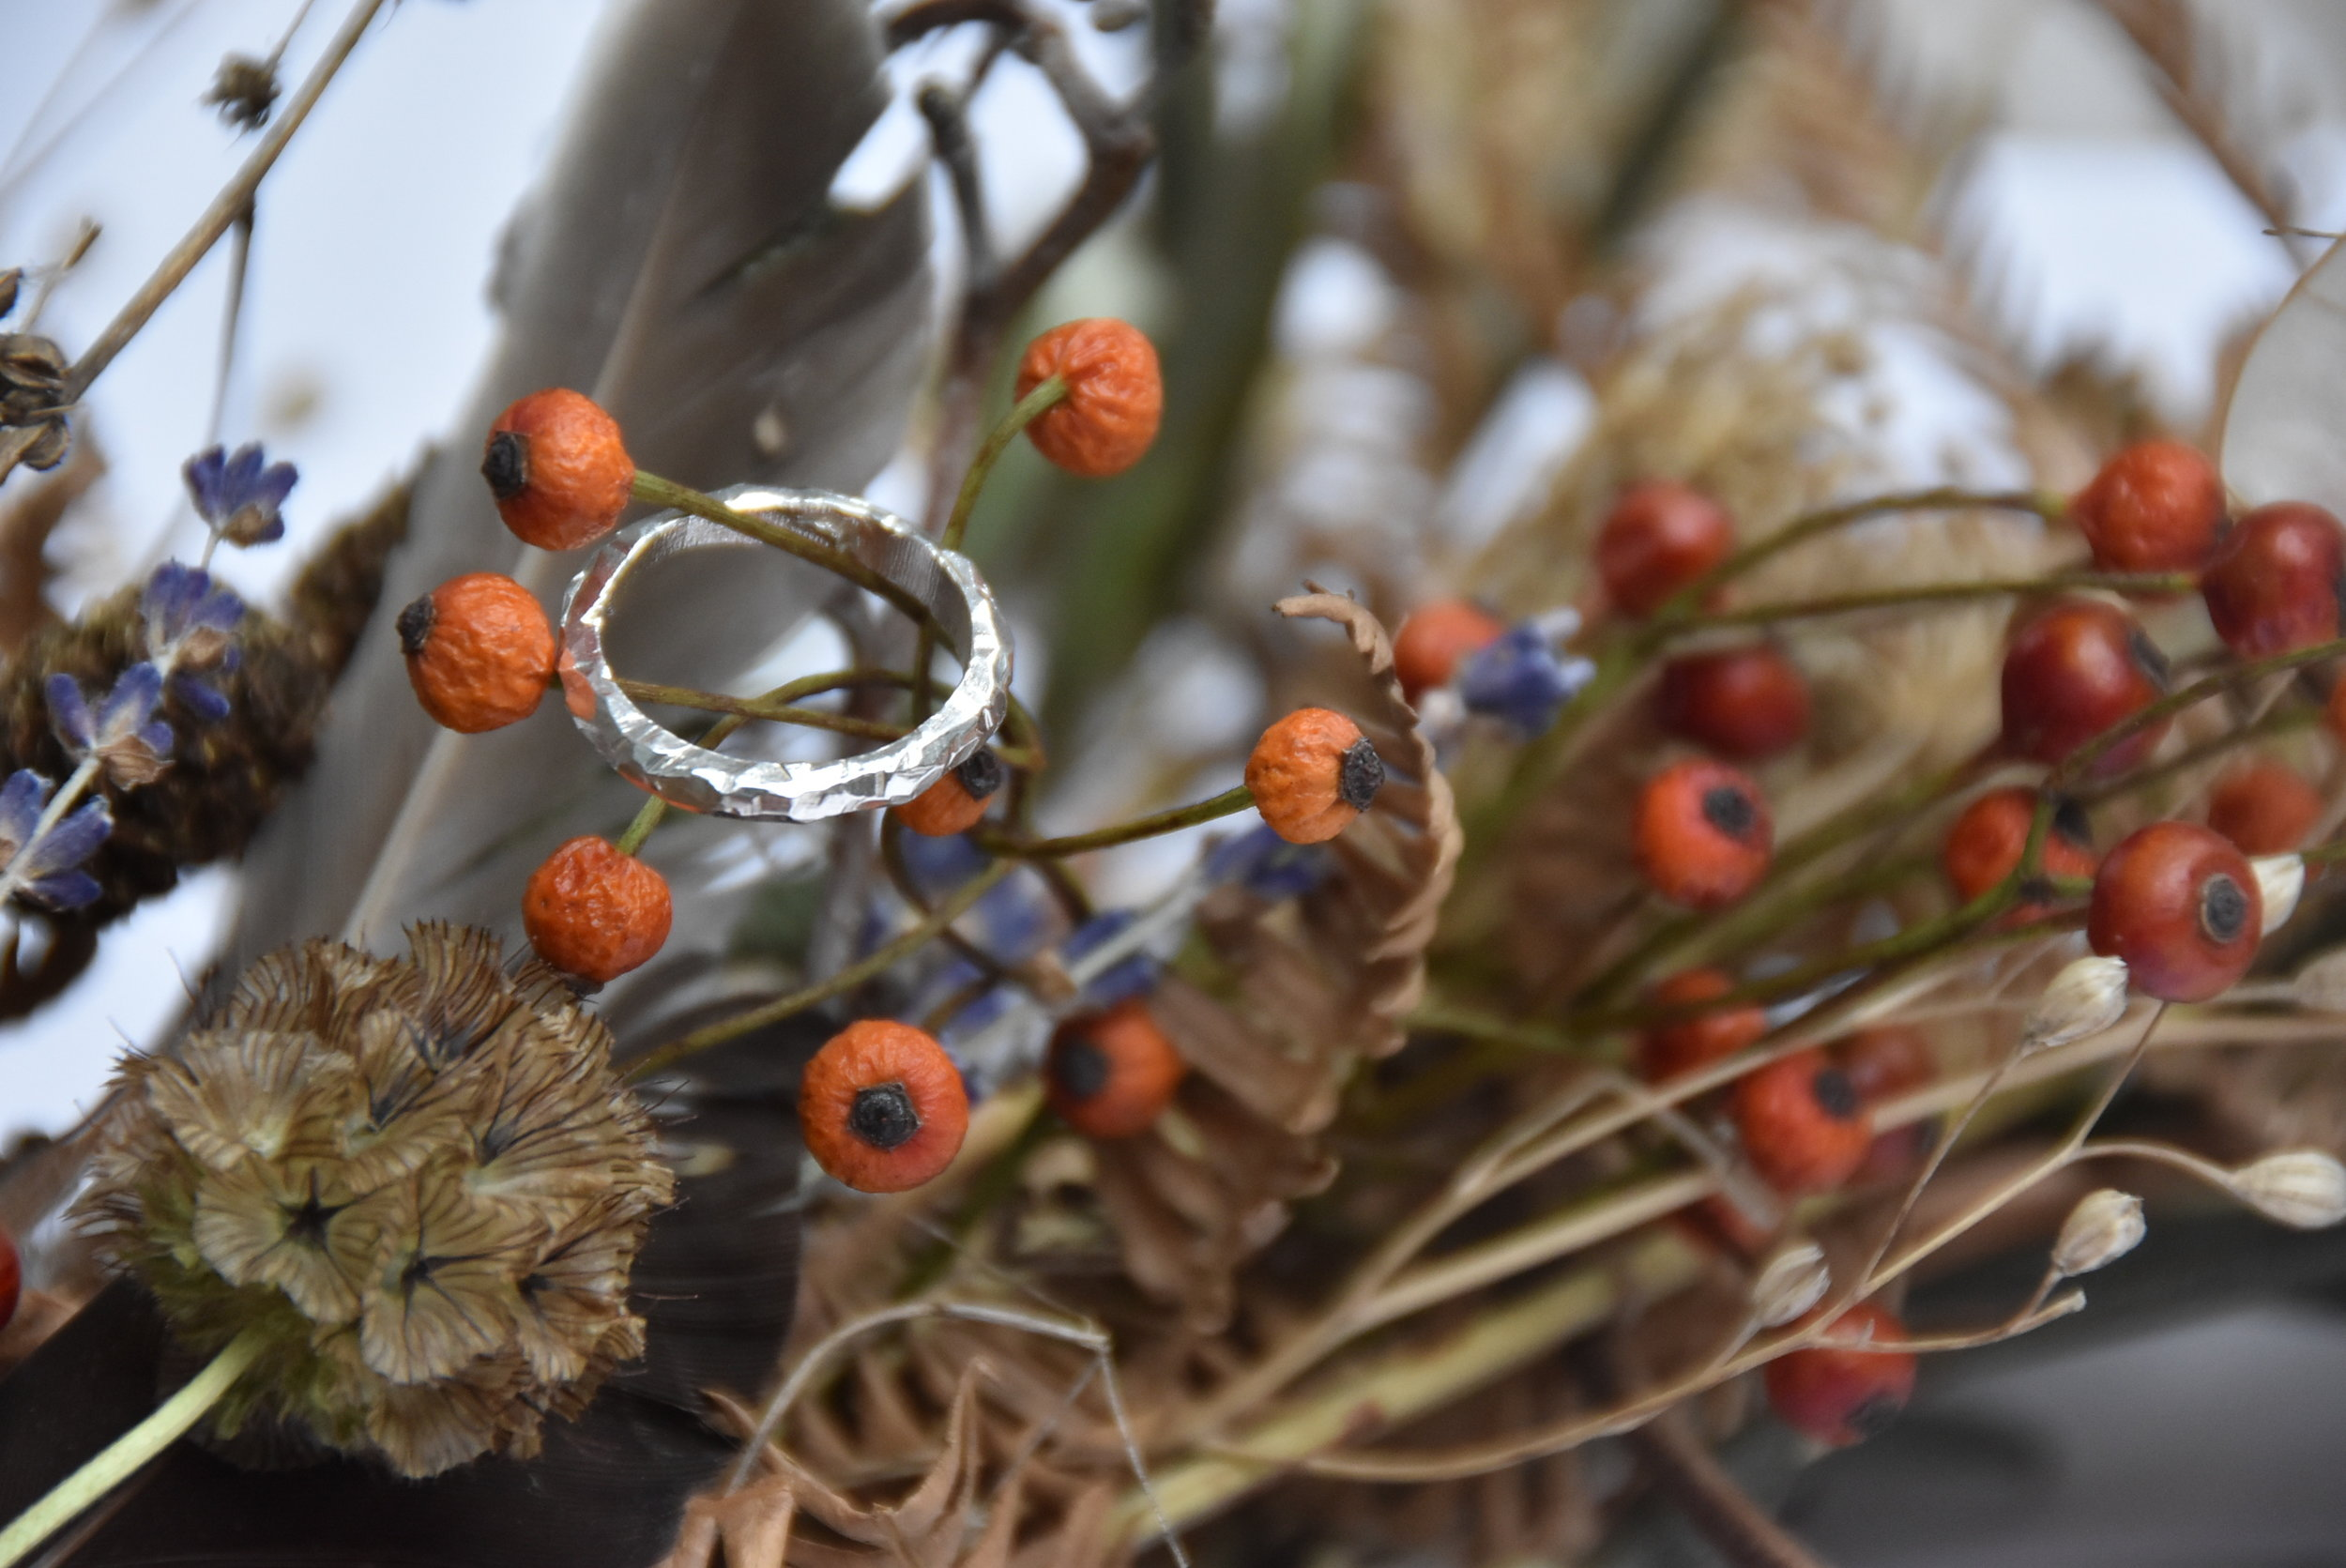 Handmade silver ring on winter wreath